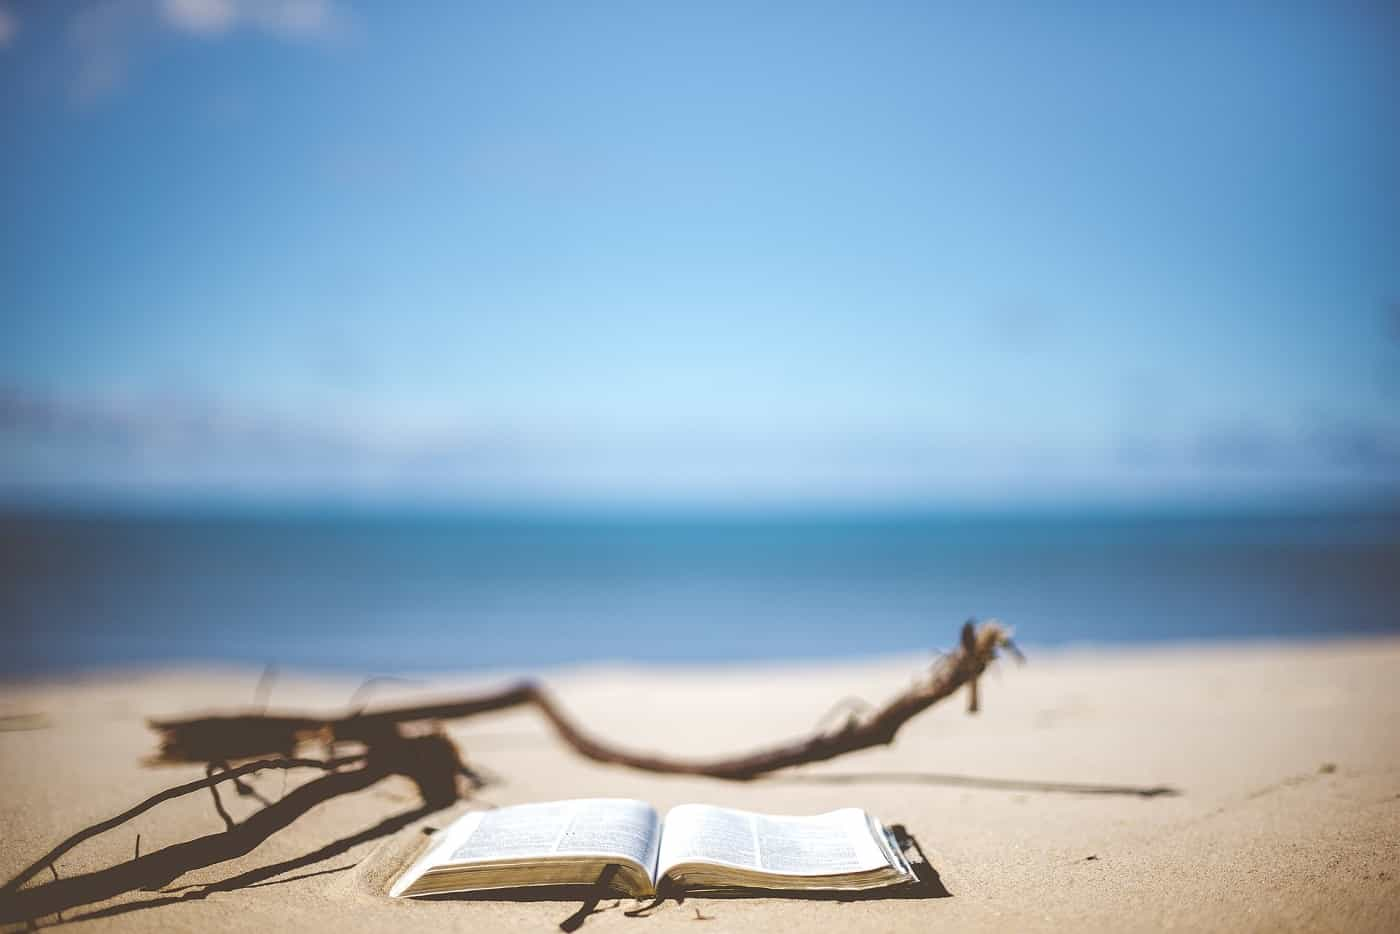 Book and driftwood lying on sandy beach - The silence of going solo